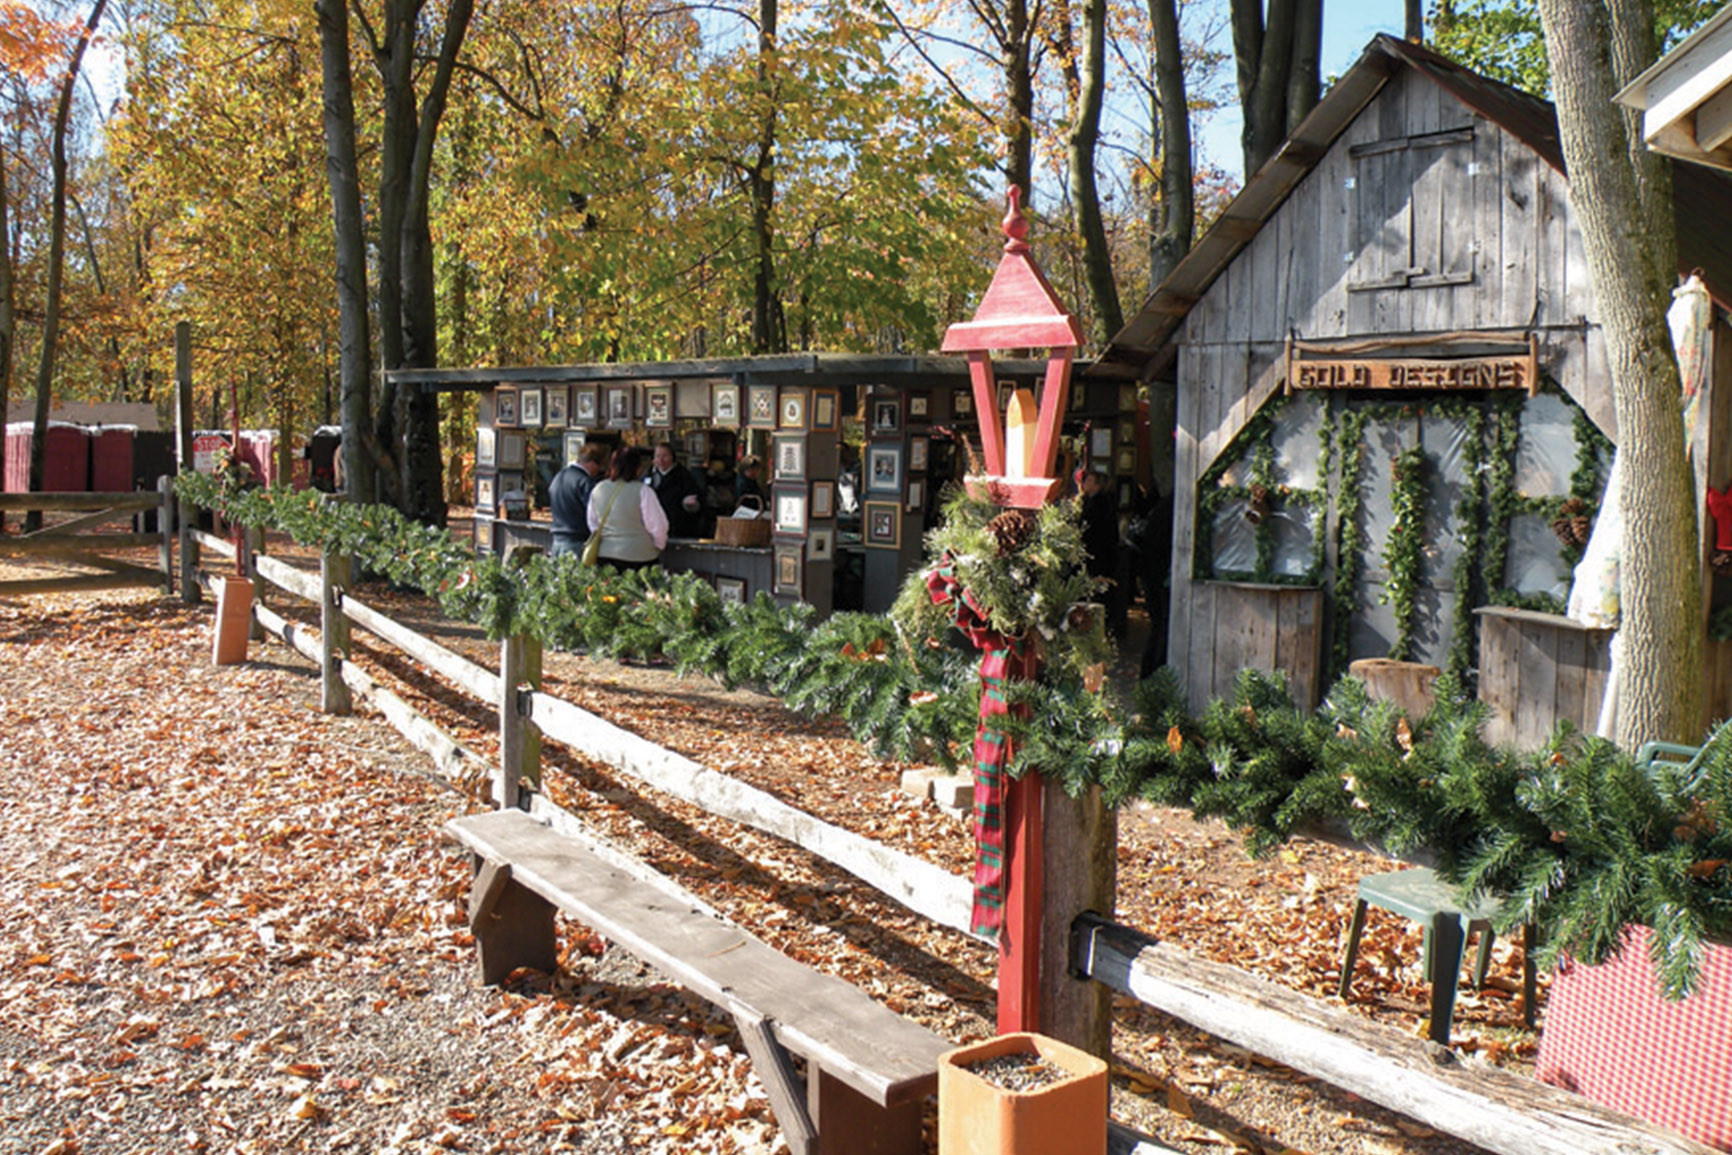 Old-Fashioned Christmas in the Woods | Youngstown Live